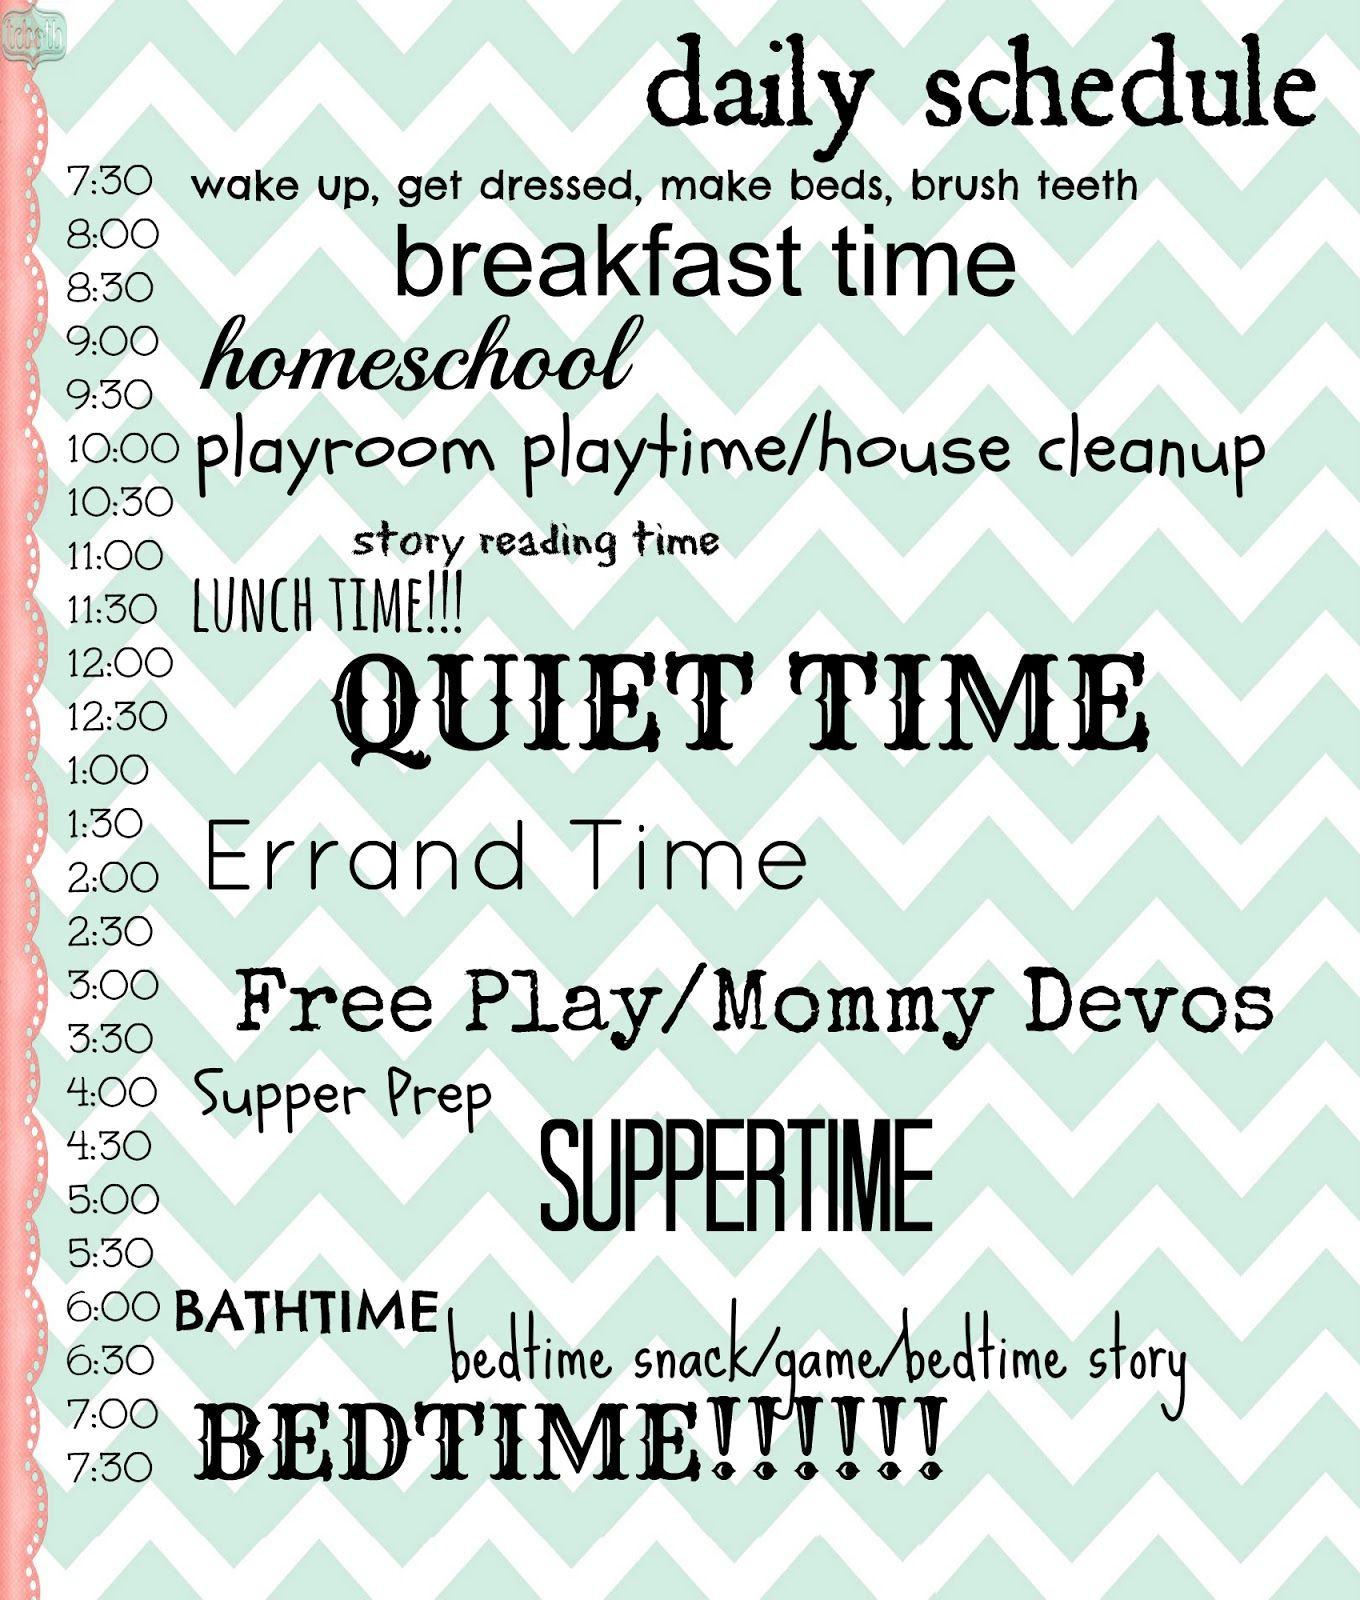 3littlerascals: Time for an update! | SAHM - daily routines ...